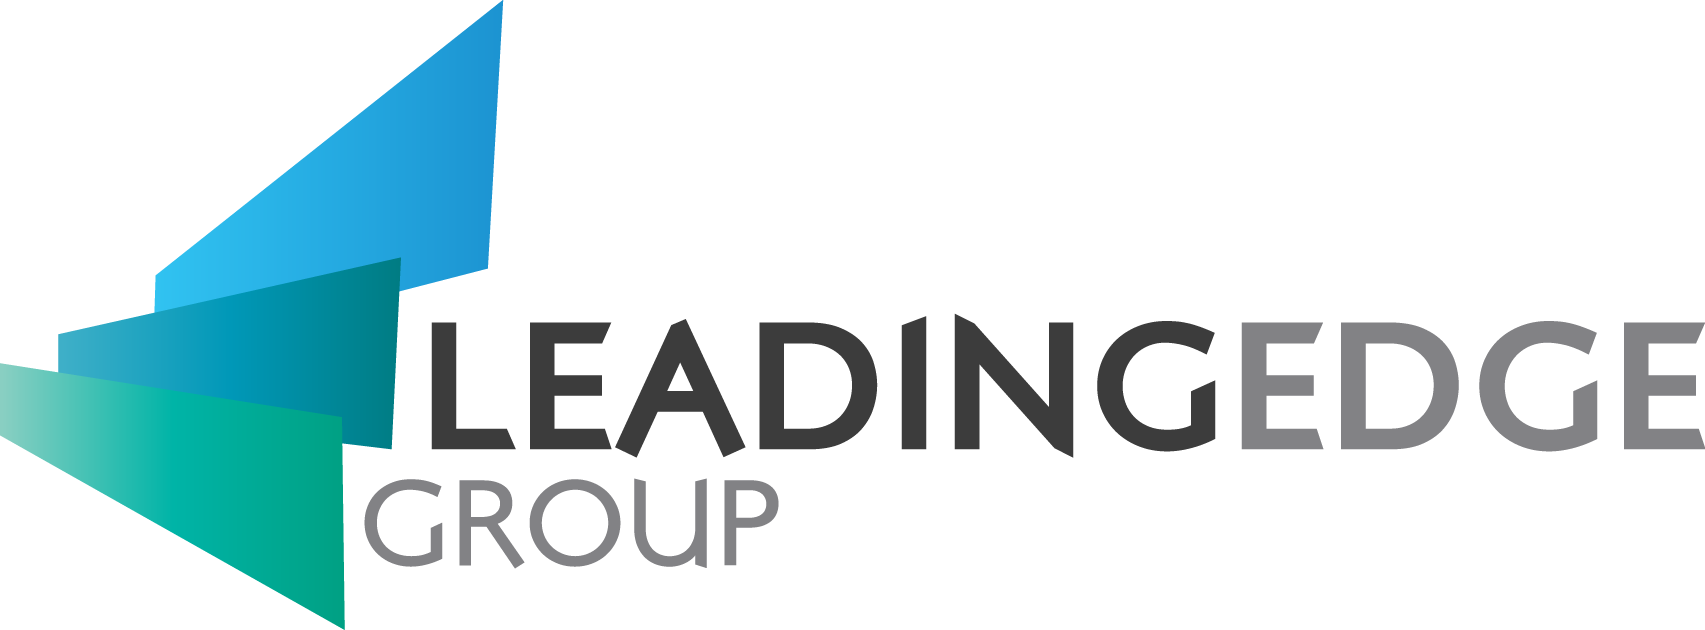 Leading Edge Group logo